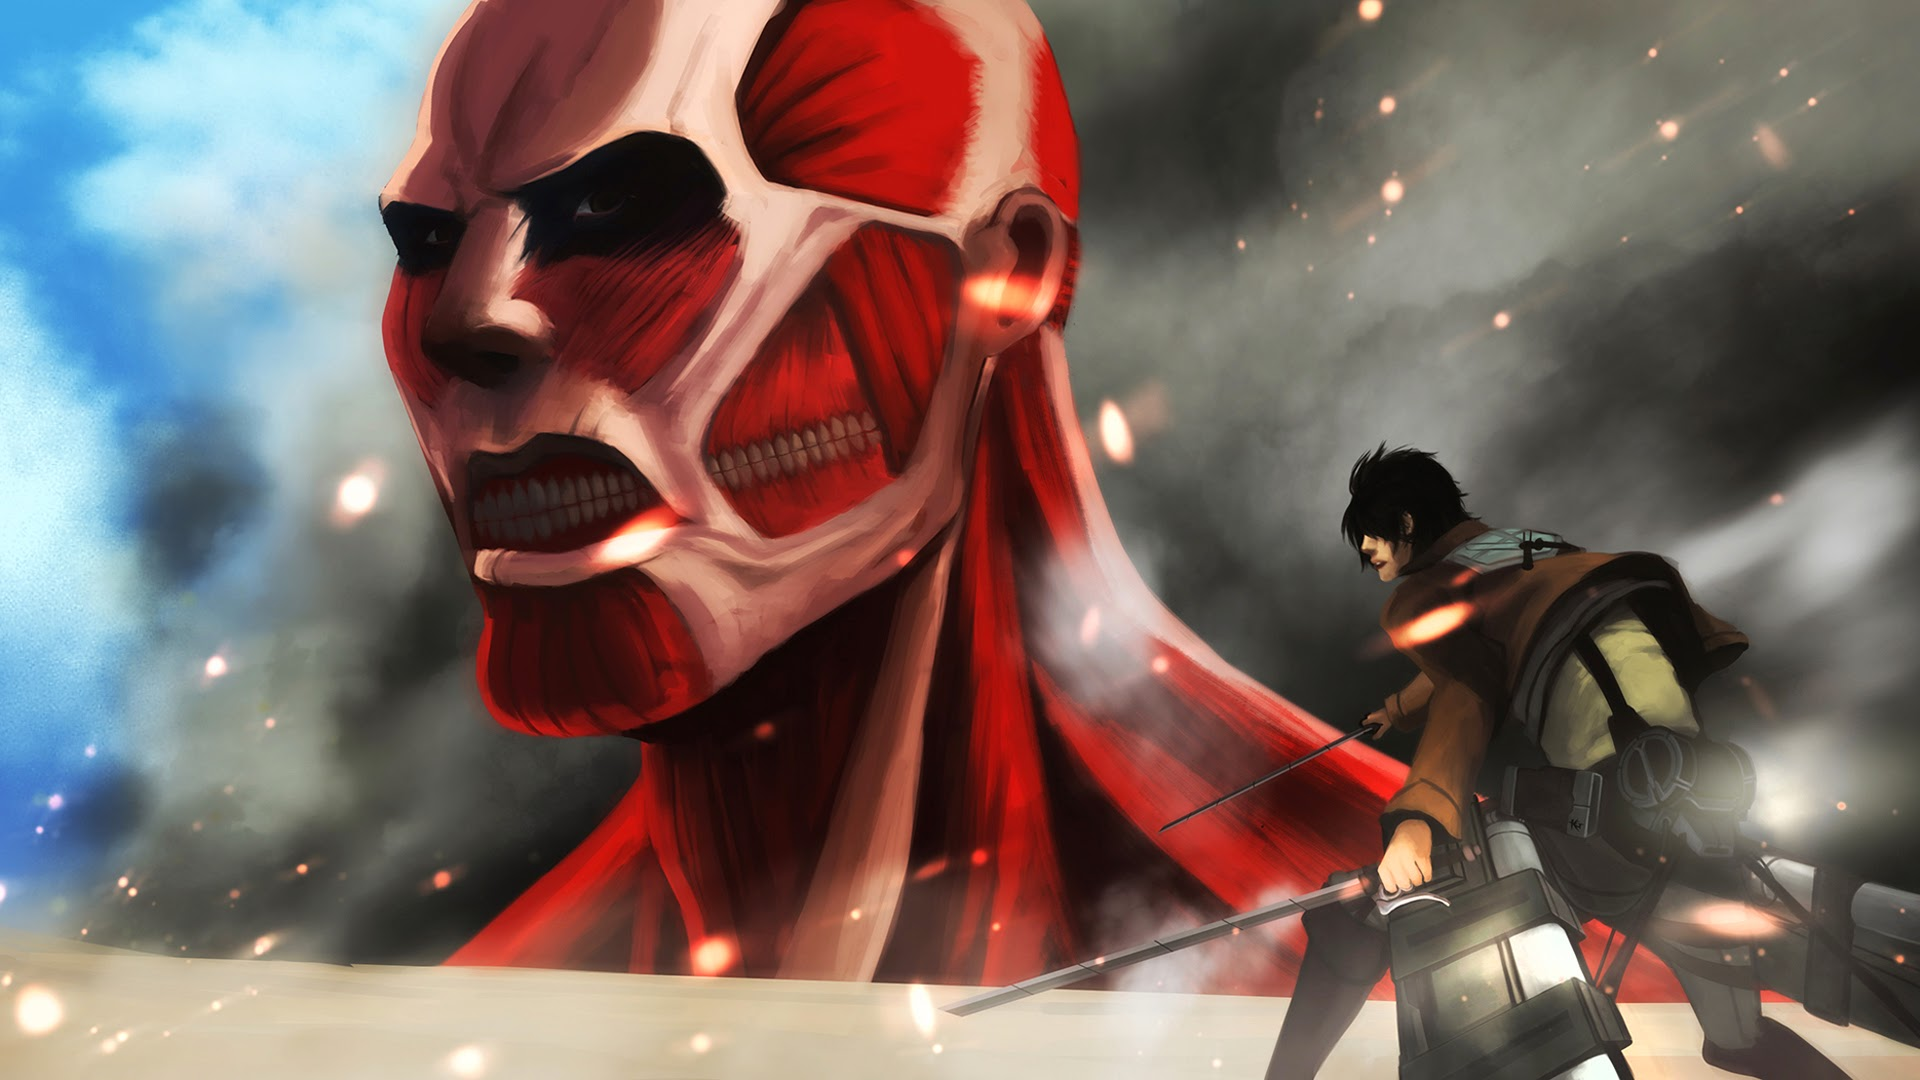 Eren Colossal Titan Attack on Titan 5o Wallpaper HD